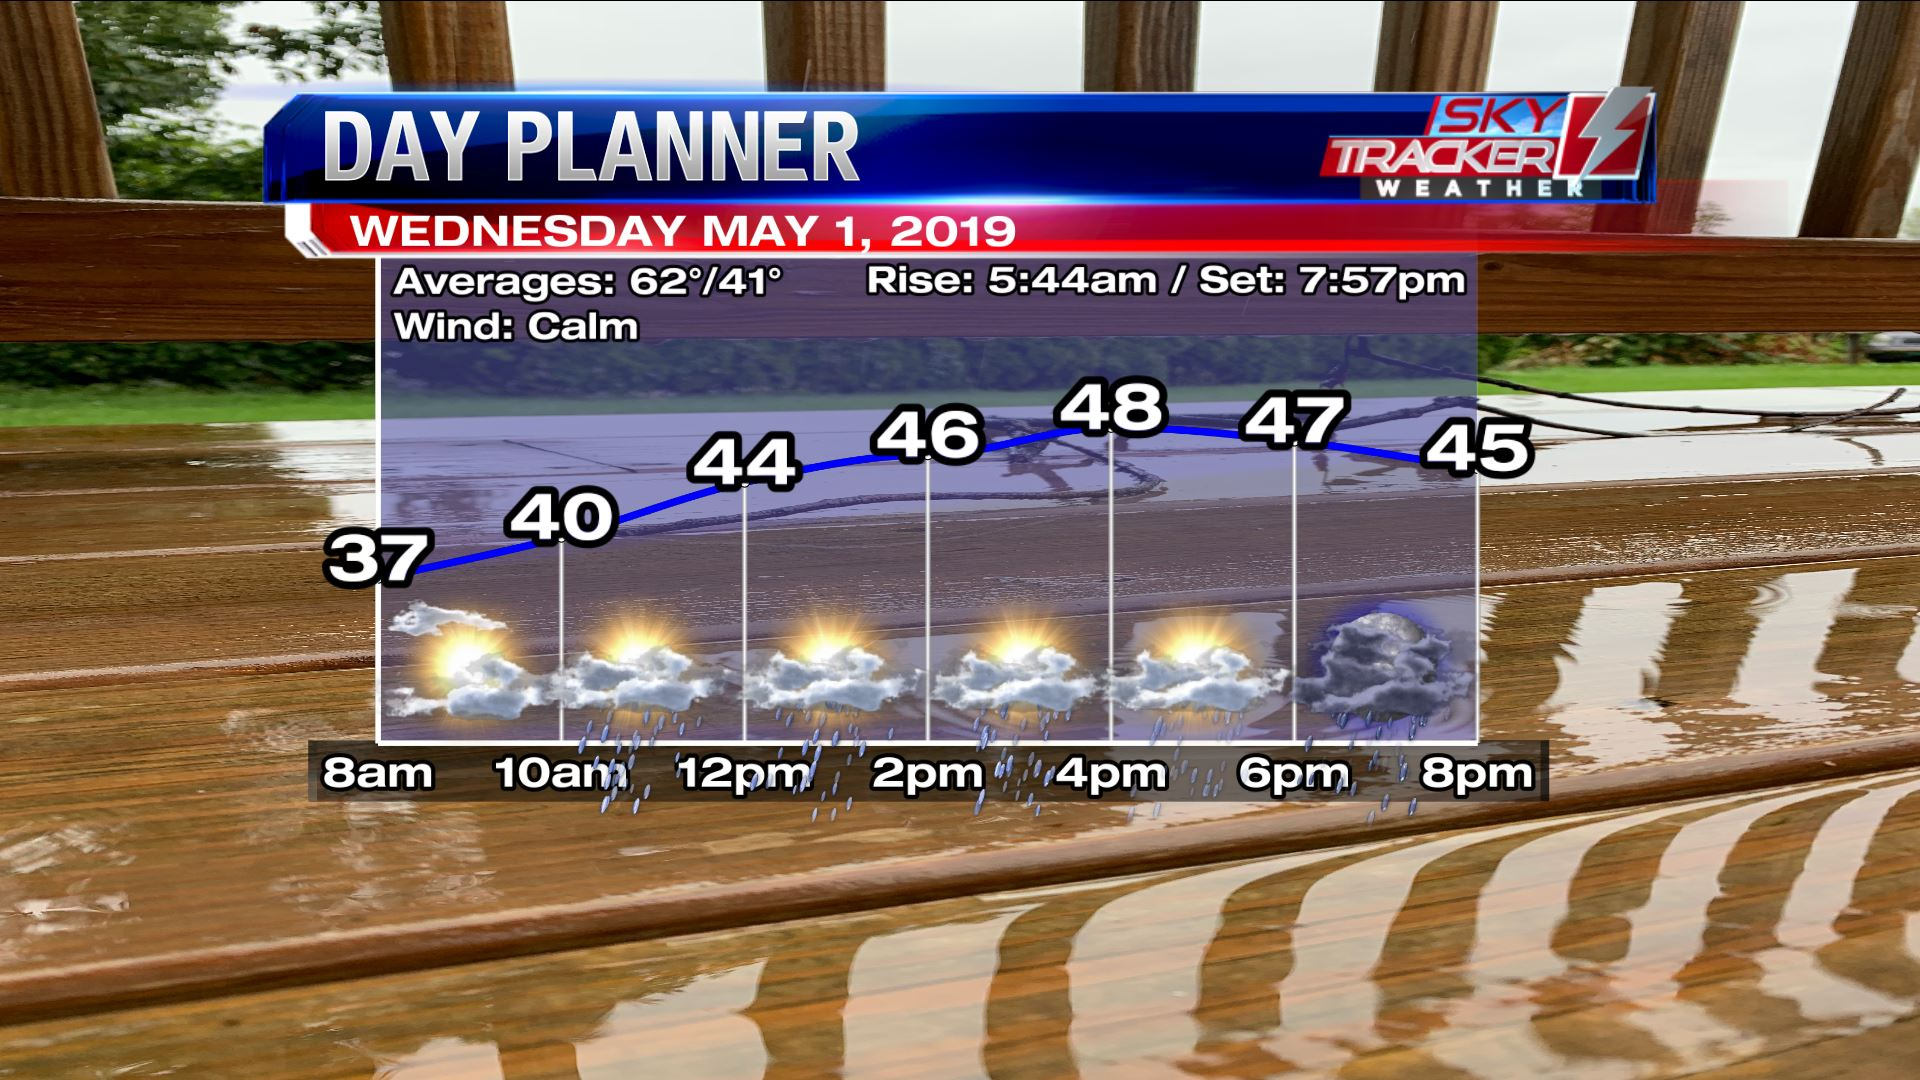 Planner for Wednesday May 1 2019